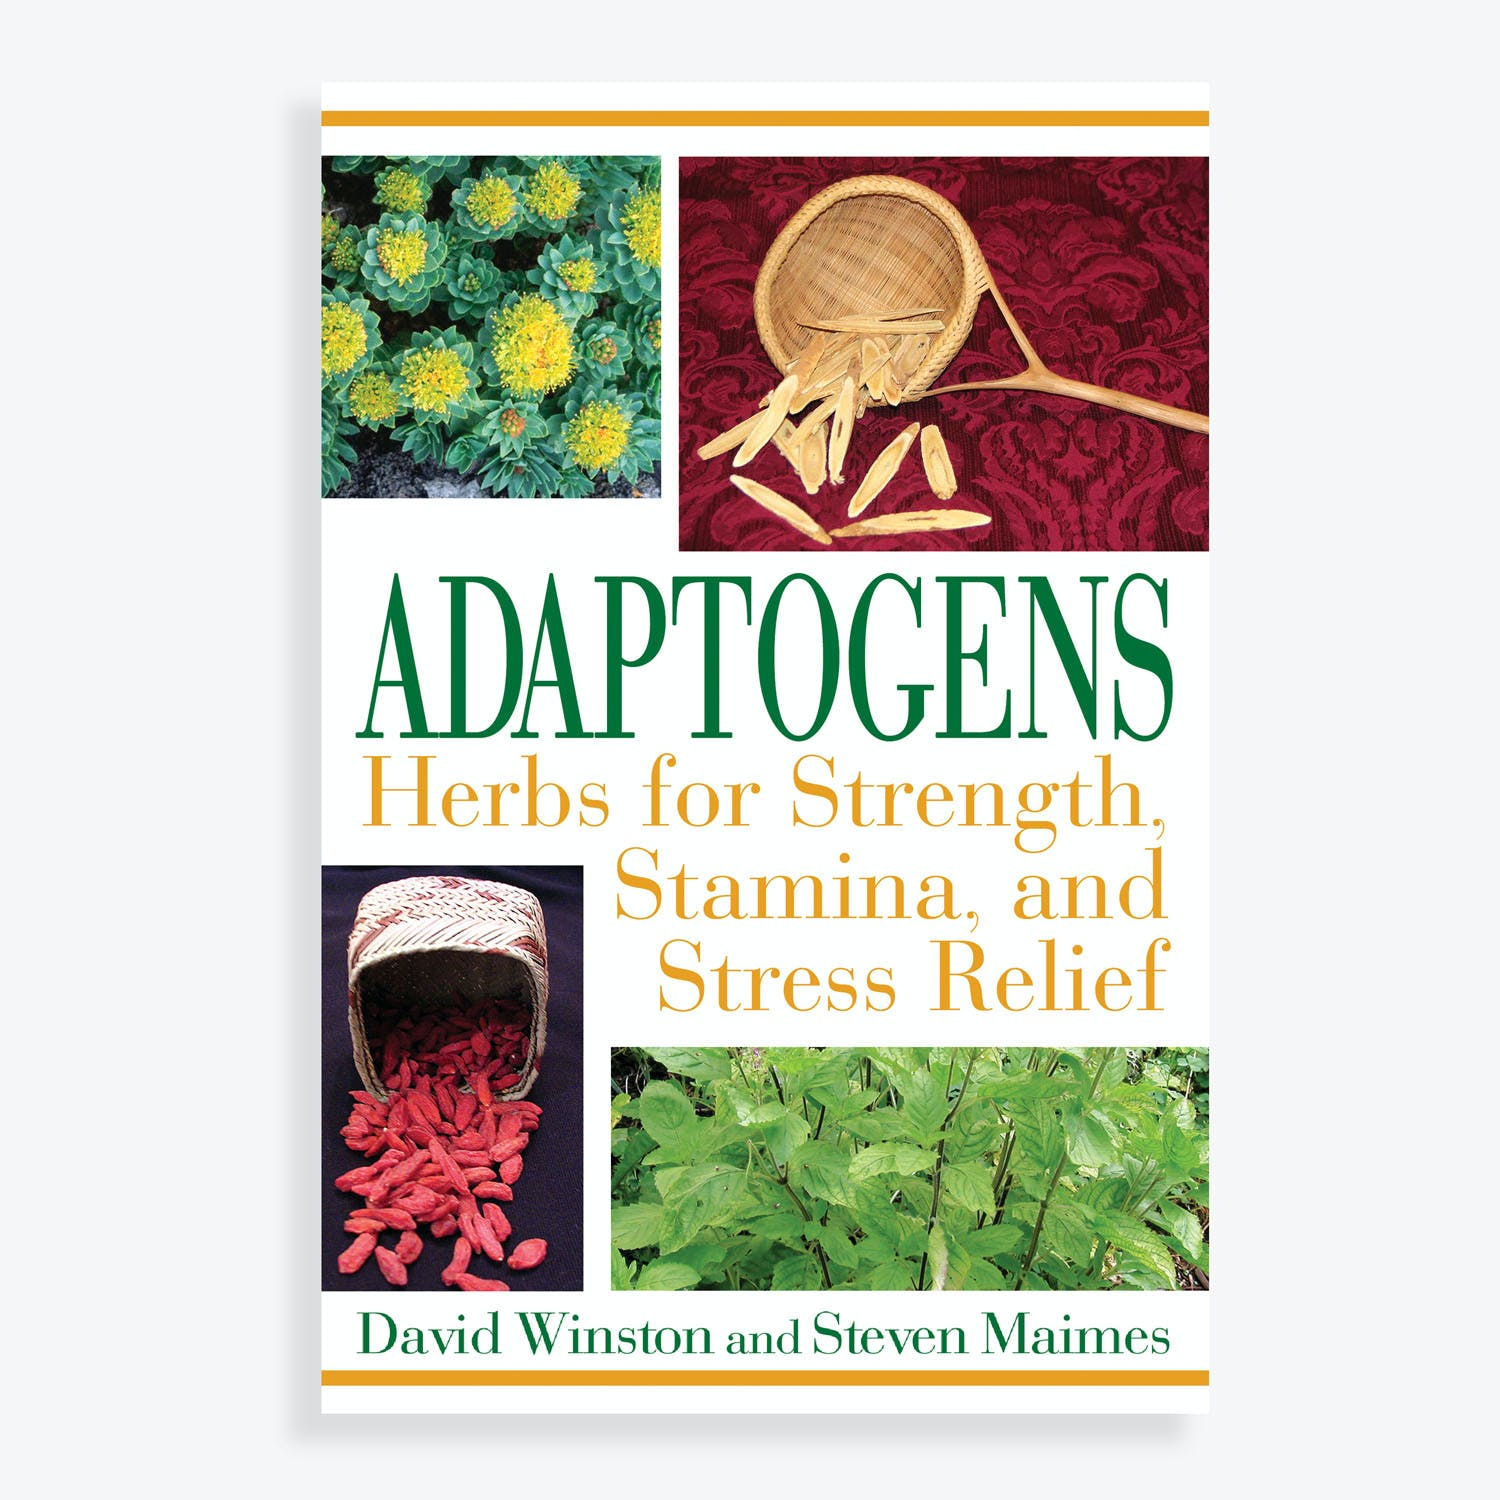 Adaptogens: Herbs for Strength, Stamina, and Stress Relief by David Winston & Steven Maimes